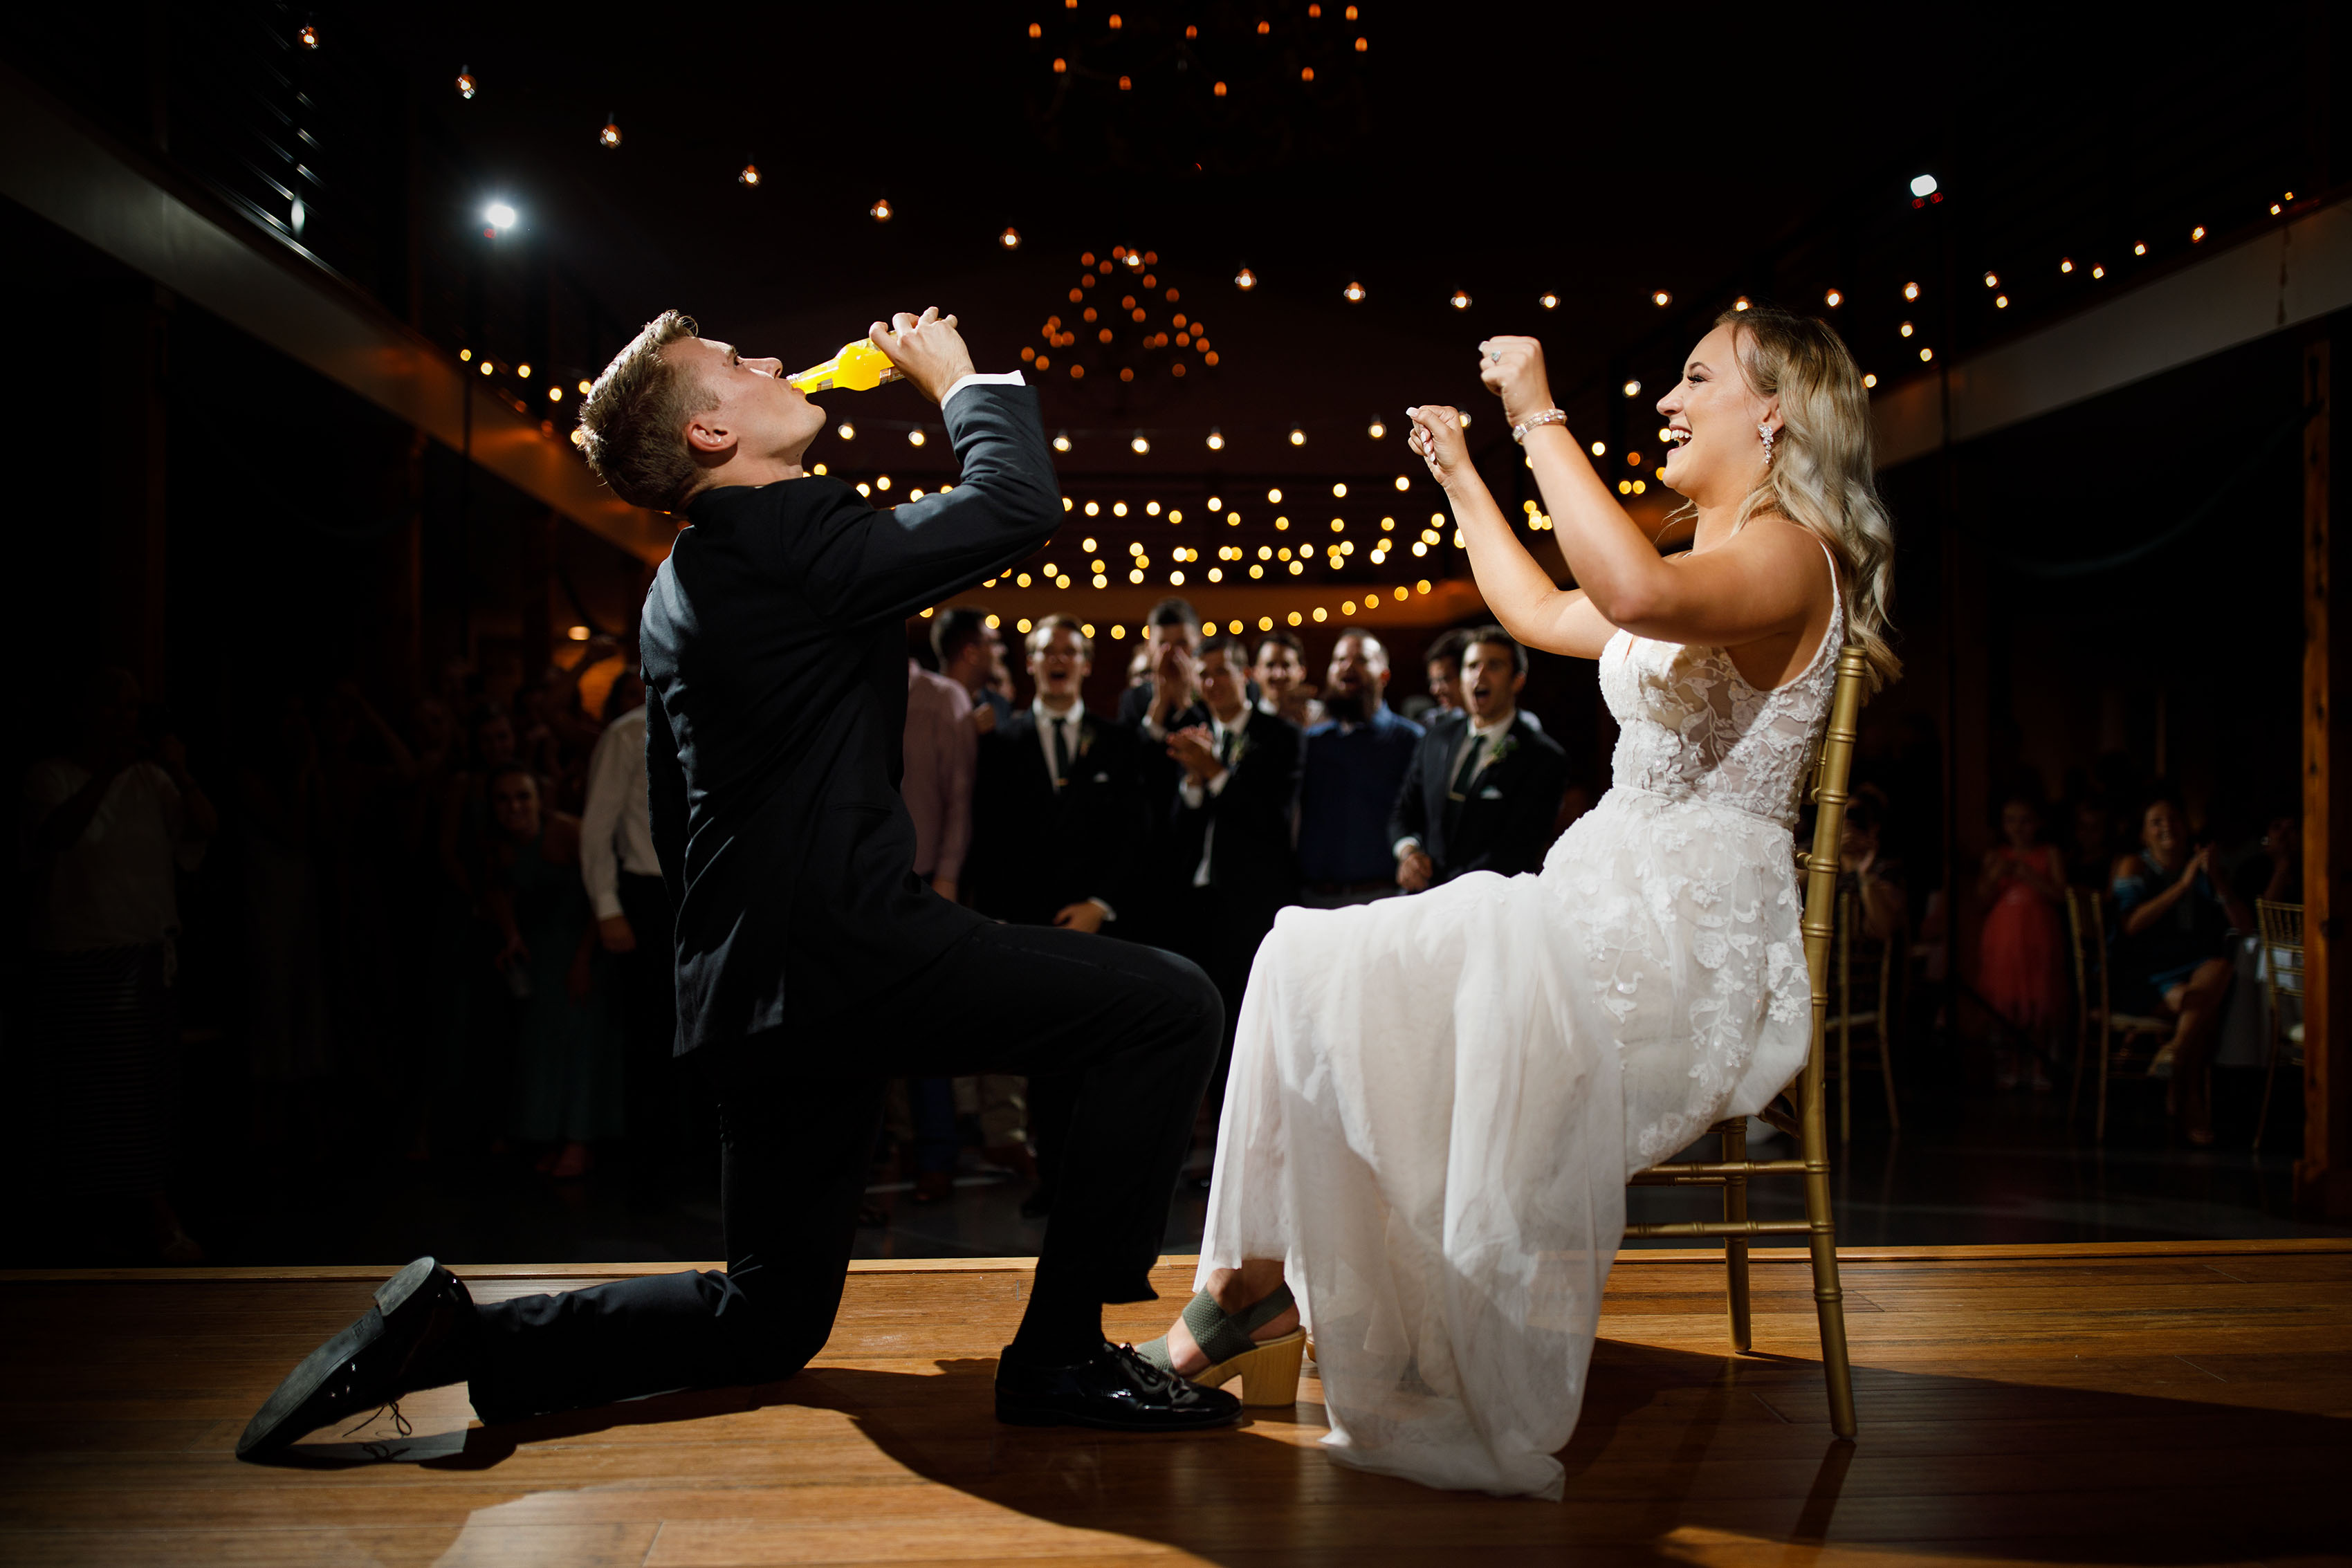 The groom gets iced by the bride during their wedding